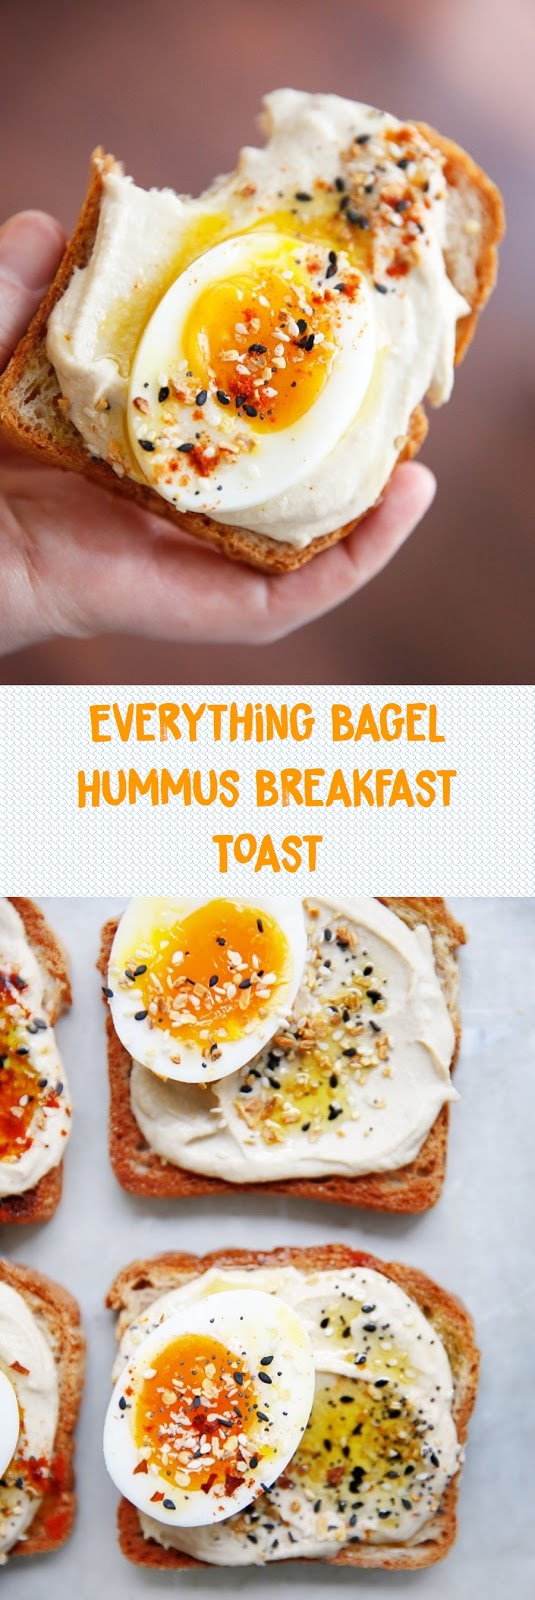 Everything Bagel Hummus Breakfast Toast